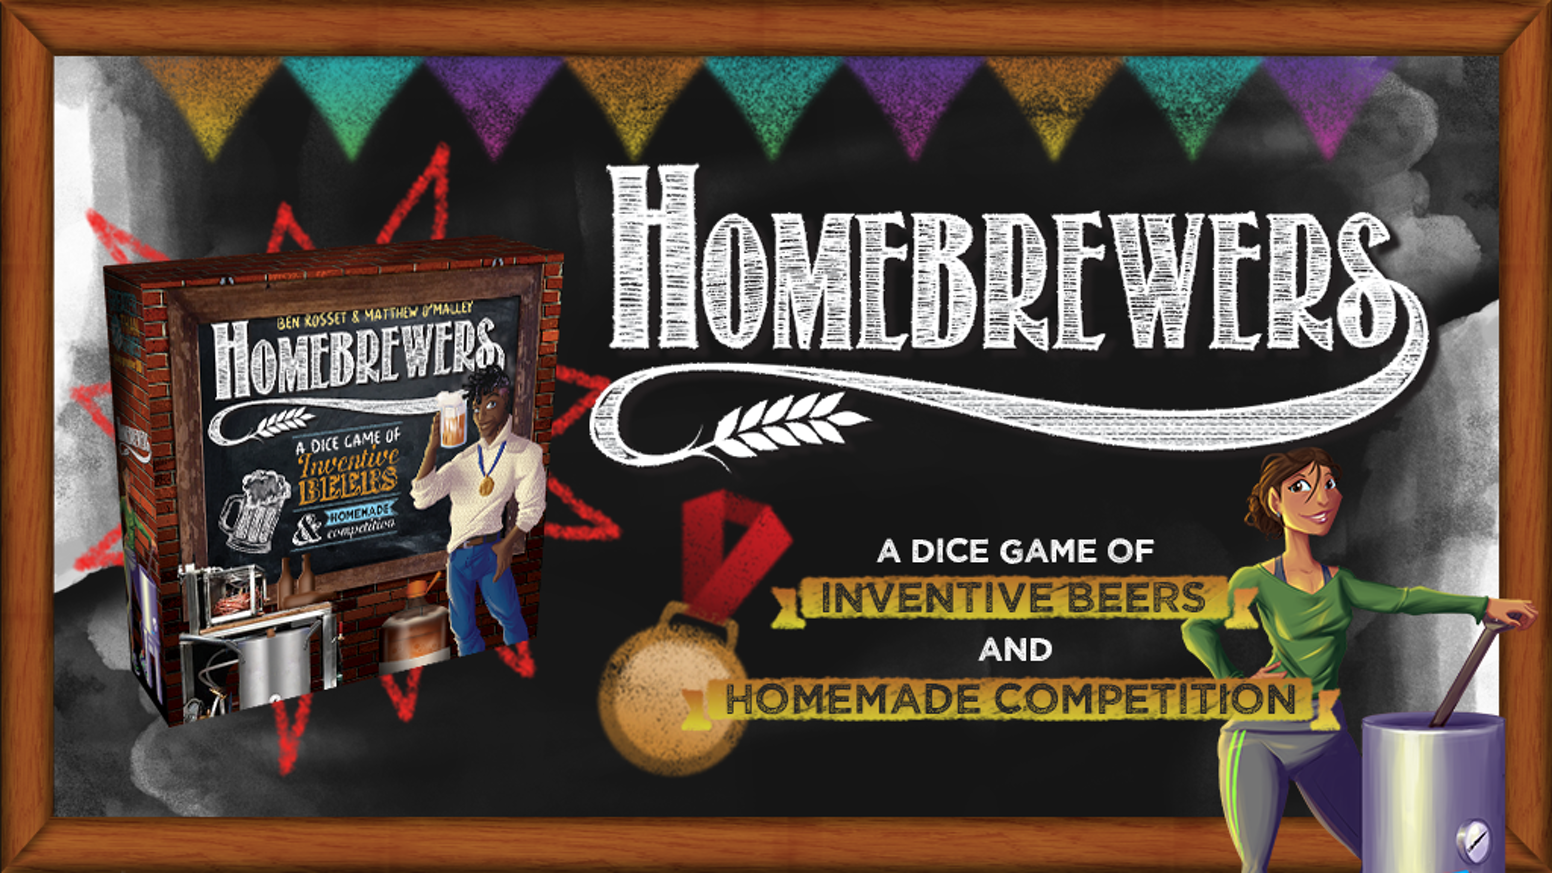 Homebrewers is a dice-rolling and recipe-crafting game of homemade competition and fun. Come see what we've got brewing!